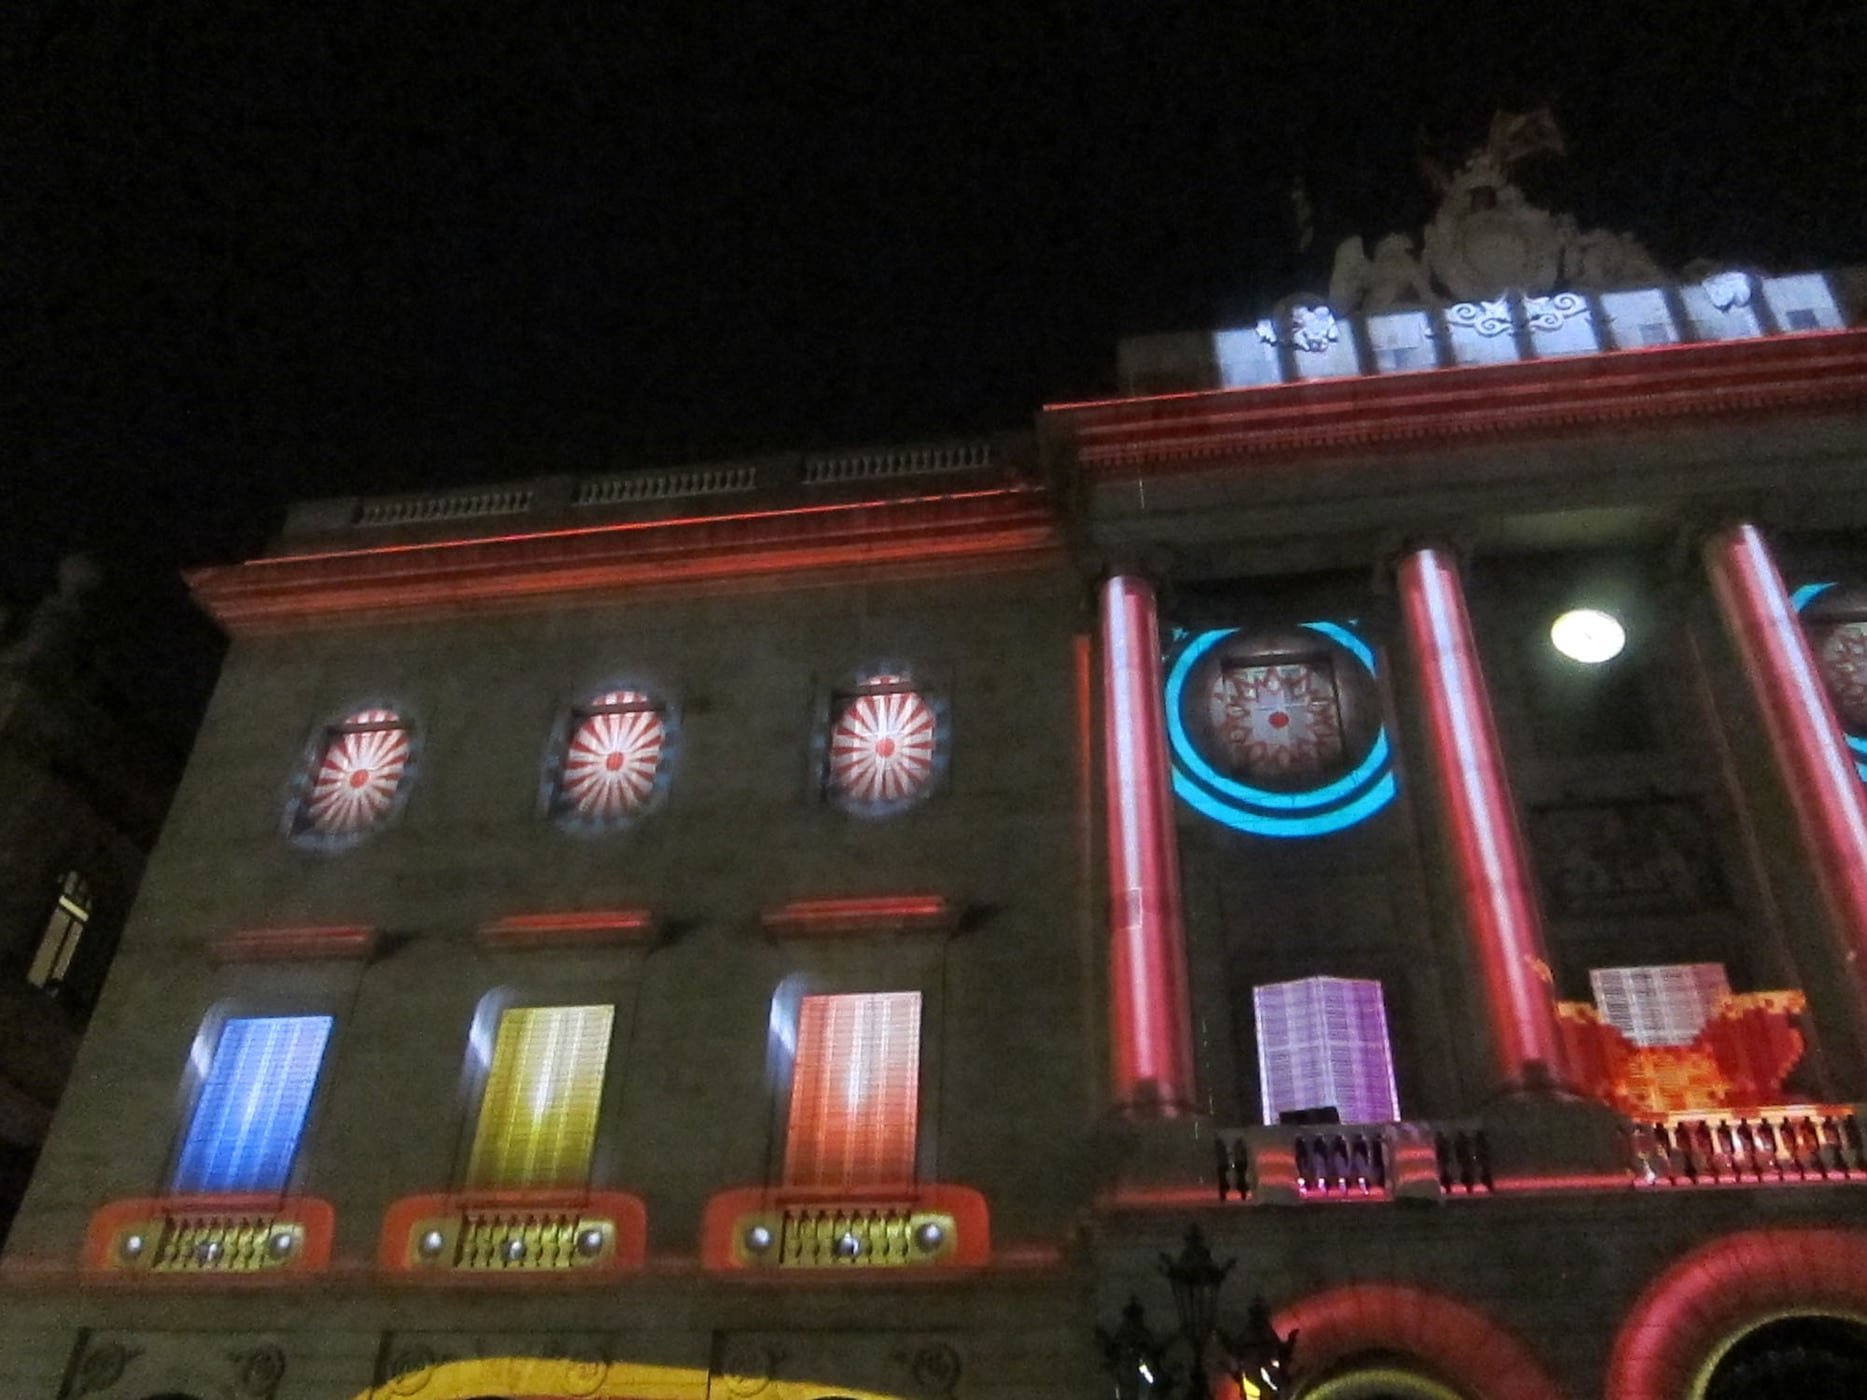 Building projections at La Mercè Festival in Barcelona, Spain